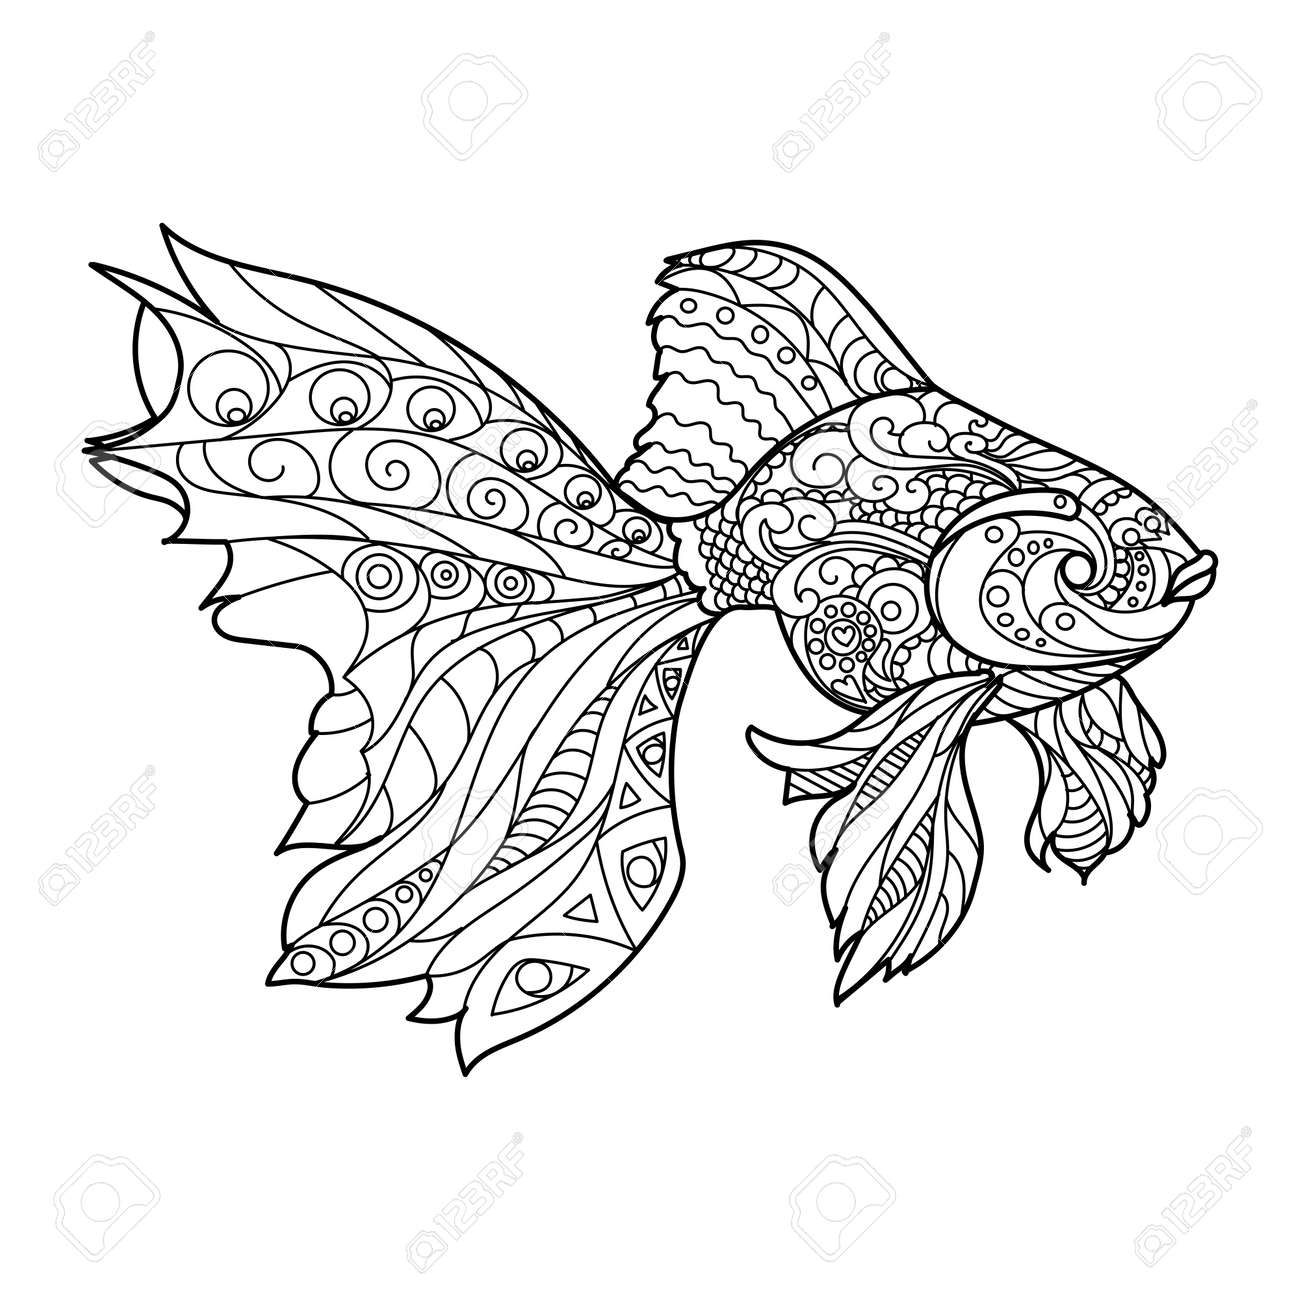 - Gold Fish Coloring Book For Adults Vector Illustration. Royalty